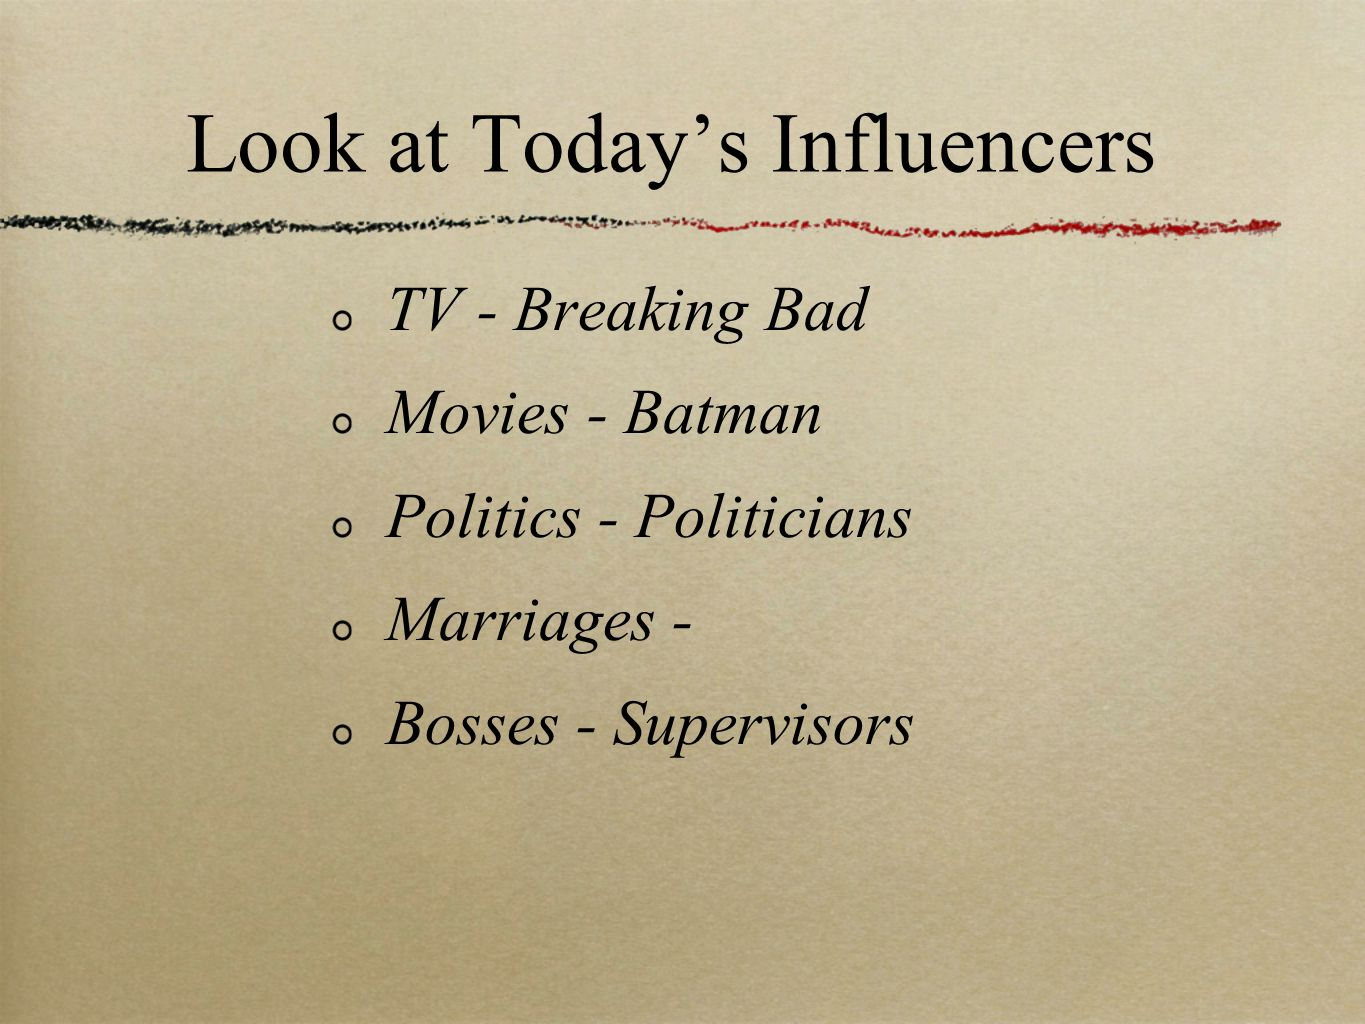 TV - Breaking Bad Movies - Batman Politics - Politicians Marriages - Bosses - Supervisors Look at Today's Influencers